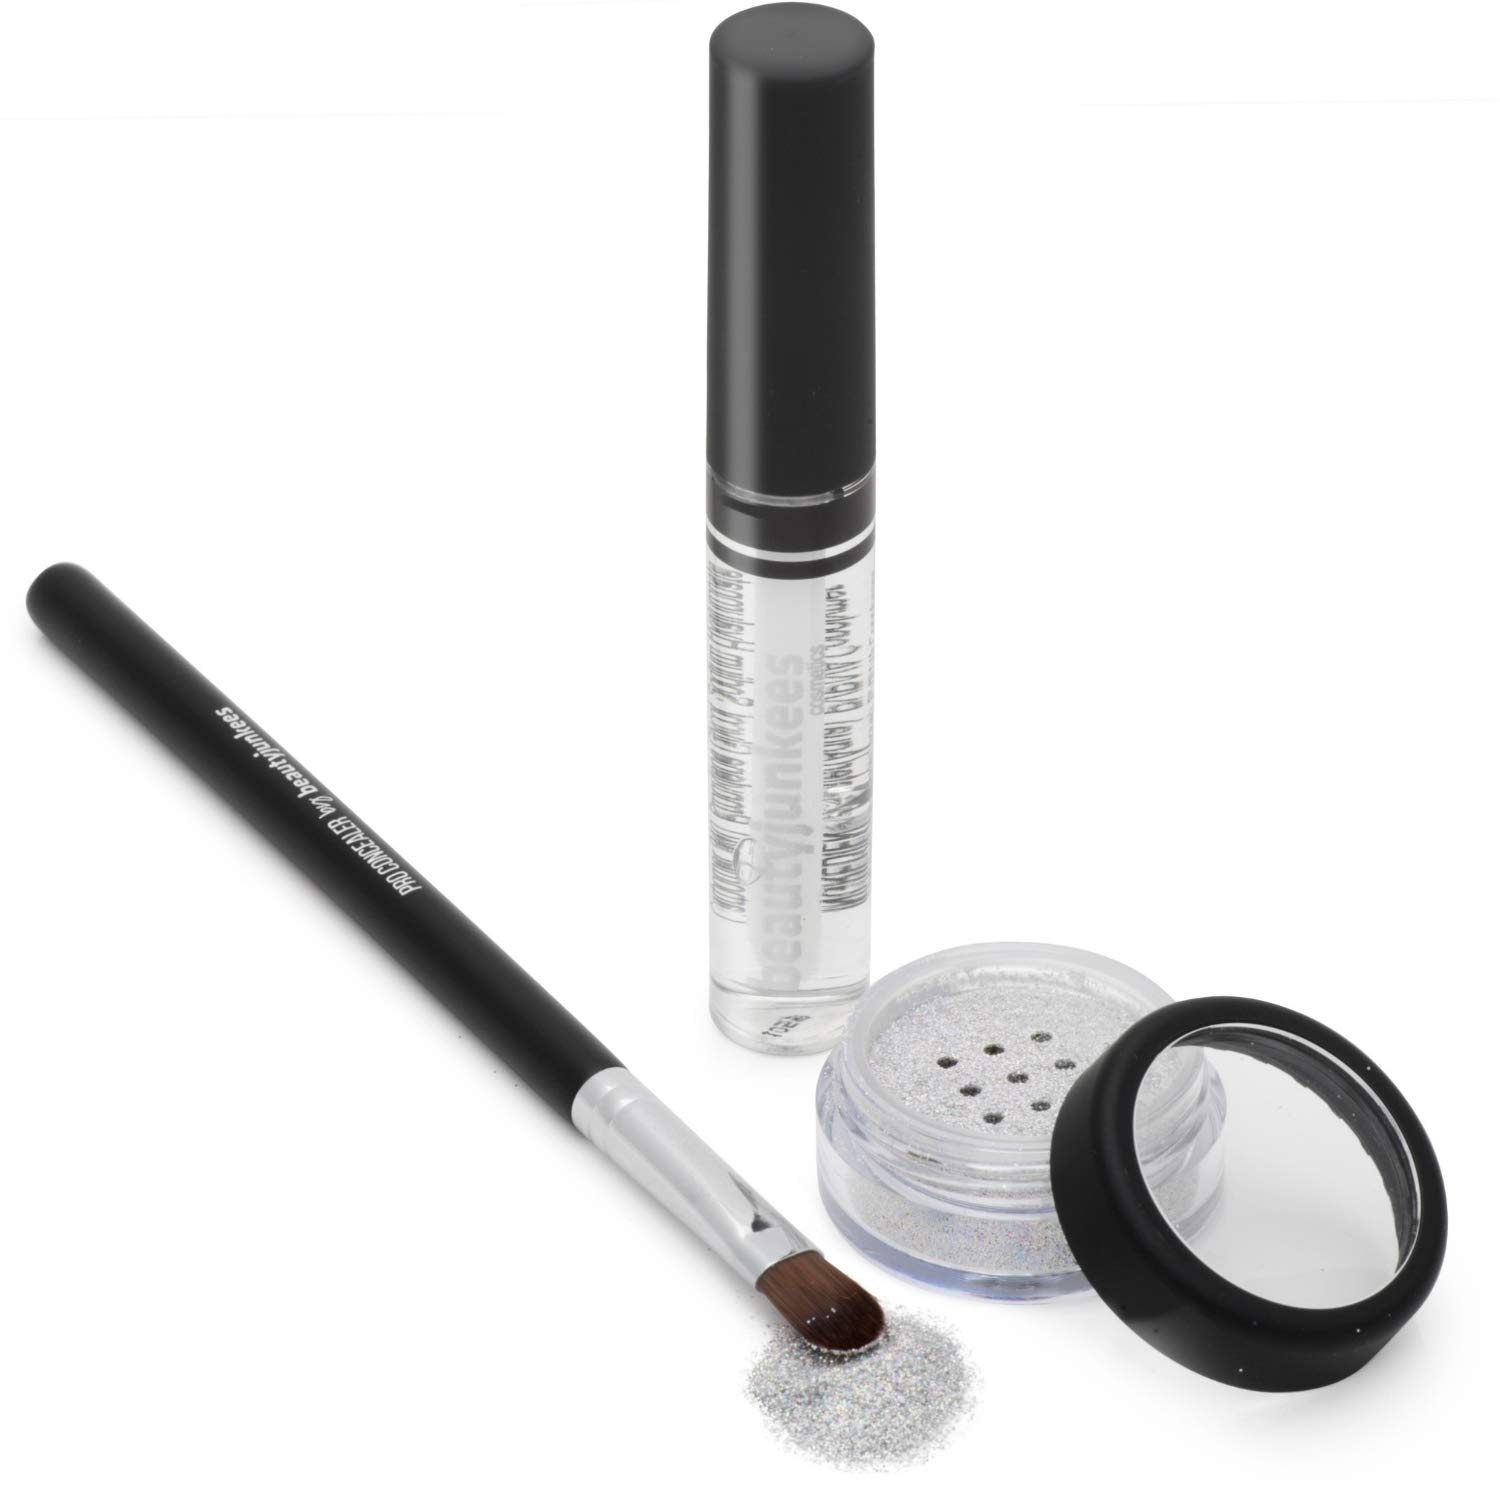 Bedazzle Holographic Cosmetic Grade Loose Glitter Makeup Kit with Brush and Glue, Extra Fine, Okay for Eyes, Face, Skin, All Over Body, No Parabens, No Gluten, No Cruelty